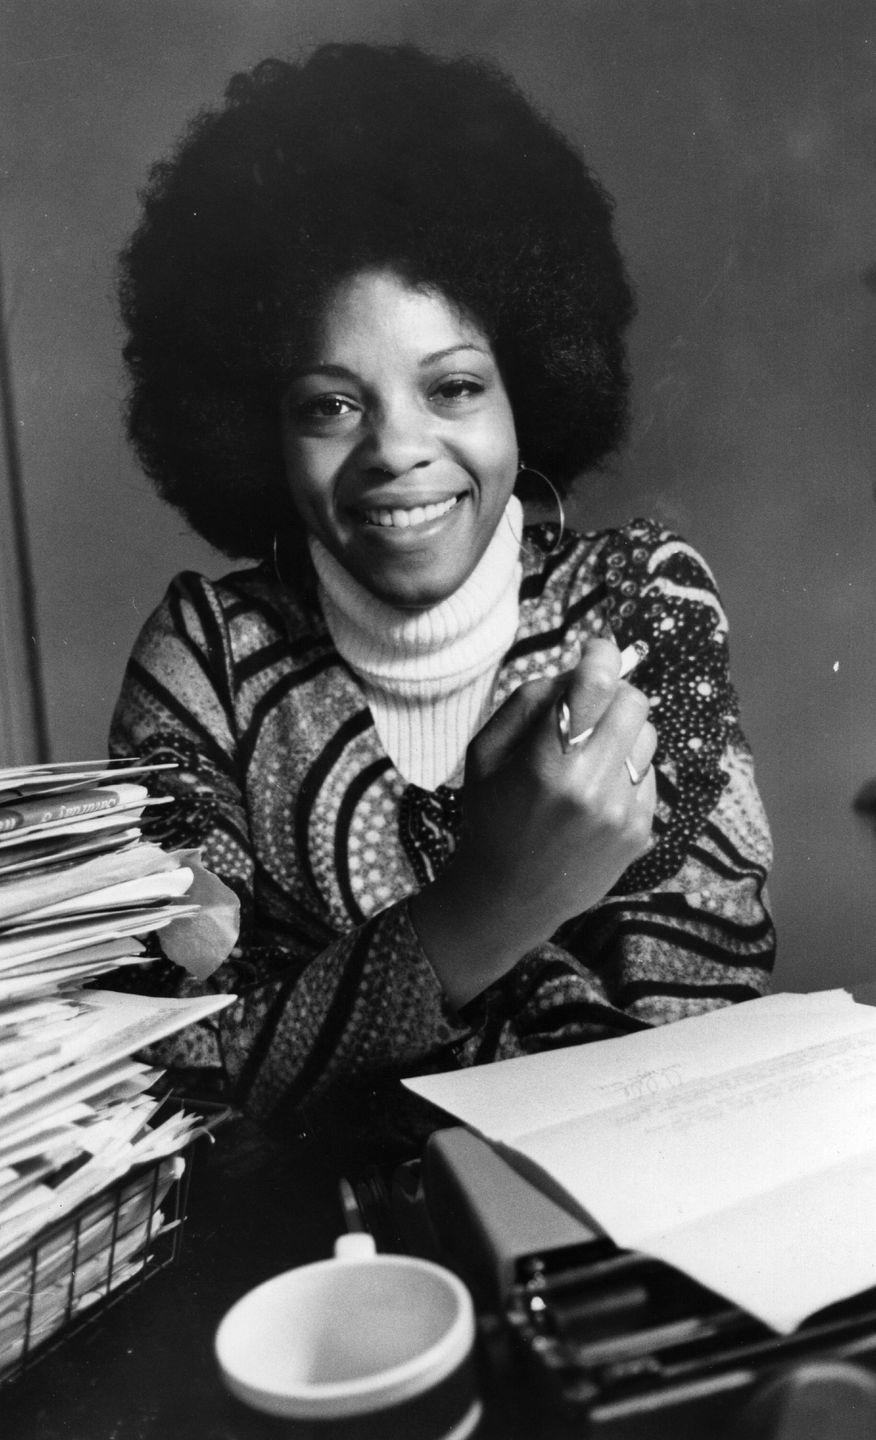 "<p>Born in Ghana and educated in the UK, London University graduate Margaret Busby became the <a href=""https://brightonmuseums.org.uk/discover/2020/03/18/margaret-busby-obe-britains-youngest-and-first-black-female-book-publisher/"" rel=""nofollow noopener"" target=""_blank"" data-ylk=""slk:first Black woman and youngest publisher in Britain when she co-founded the Allison and Busby publishing house in the 1960s"" class=""link rapid-noclick-resp"">first Black woman and youngest publisher in Britain when she co-founded the Allison and Busby publishing house in the 1960s</a>. As A&B's editorial director for 20 years, she championed the work of acclaimed authors including Buchi Emecheta and Nuruddin Farah, as well as publishing Sam Greenlee's widely-rejected novel <a href=""https://www.amazon.co.uk/Spook-Who-Sat-Door/dp/1943138176?tag=hearstuk-yahoo-21&ascsubtag=%5Bartid%7C1921.g.31482%5Bsrc%7Cyahoo-uk"" rel=""nofollow noopener"" target=""_blank"" data-ylk=""slk:The Spook Who Sat by the Door"" class=""link rapid-noclick-resp"">The Spook Who Sat by the Door</a>.</p><p>Following a move to Earthscan Publications to become its Editorial Director, Busby commenced a freelance career, writing for newspapers, the radio and the stage, in addition to judging numerous literary awards and chairing the judges for the <a href=""https://thebookerprizes.com/author/margaret-busby-chair-0"" rel=""nofollow noopener"" target=""_blank"" data-ylk=""slk:2020 Booker Prize"" class=""link rapid-noclick-resp"">2020 Booker Prize</a>.</p><p>During the Nineties, Busby compiled the <a href=""https://www.amazon.co.uk/Daughters-Africa-Margaret-Busby/dp/0224035924?tag=hearstuk-yahoo-21&ascsubtag=%5Bartid%7C1921.g.31482%5Bsrc%7Cyahoo-uk"" rel=""nofollow noopener"" target=""_blank"" data-ylk=""slk:Daughters of Africa"" class=""link rapid-noclick-resp"">Daughters of Africa</a> and <a href=""https://www.amazon.co.uk/New-Daughters-Africa-International-Anthology/?tag=hearstuk-yahoo-21&ascsubtag=%5Bartid%7C1921.g.31482%5Bsrc%7Cyahoo-uk"" rel=""nofollow noopener"" target=""_blank"" data-ylk=""slk:New Daughters of Africa"" class=""link rapid-noclick-resp"">New Daughters of Africa</a> anthologies, which brought together more than 400 writers of Africa descent, among whom many donated their fees to create a scholarship for Black, female students at SOAS, University of London.</p><p>Appointed an OBE for services to literature and publishing in 2006 and a recipient of the Royal Society of Literature's Benson Medal, it's certain that without Busby's tireless efforts to amplify the work and presence of Black creatives, the literary landscape would be unrecognisable.</p>"